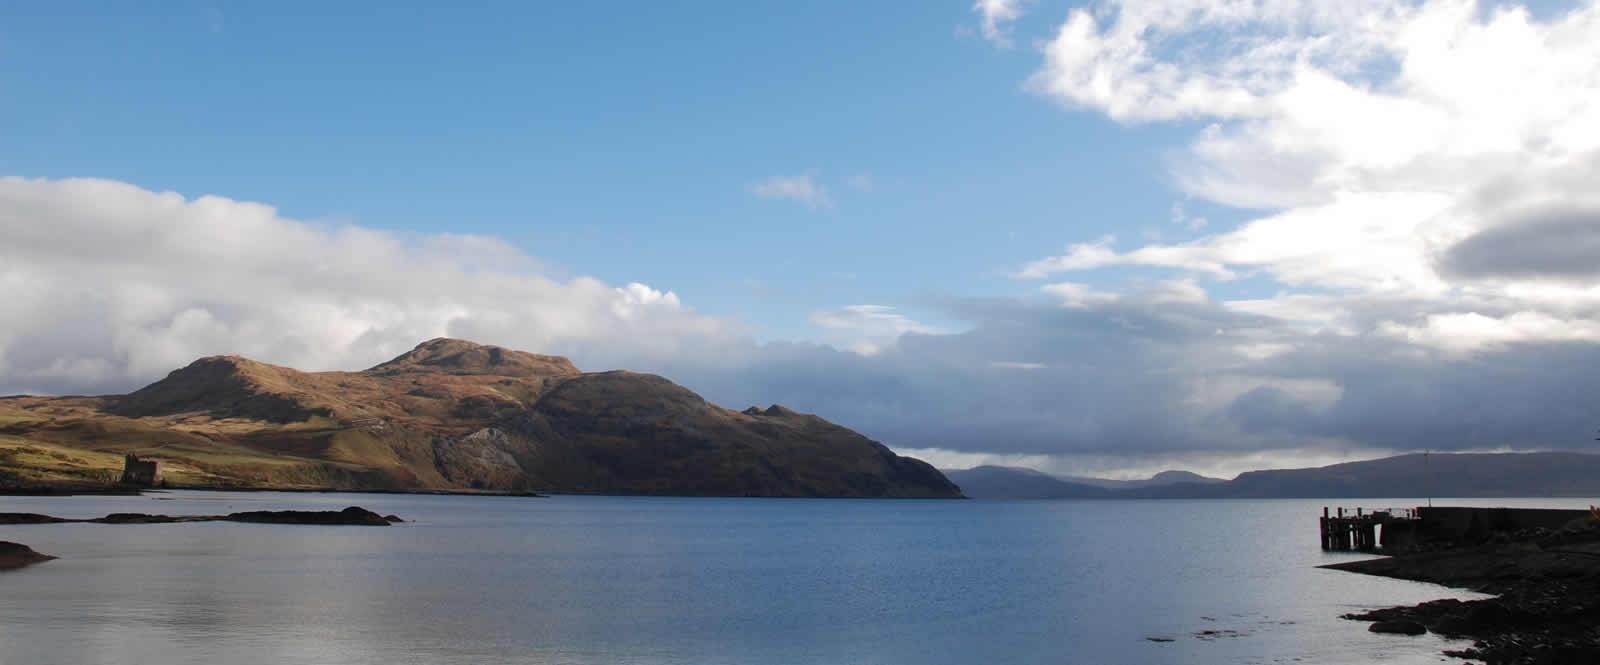 Guide to Ardnamurchan Peninsula